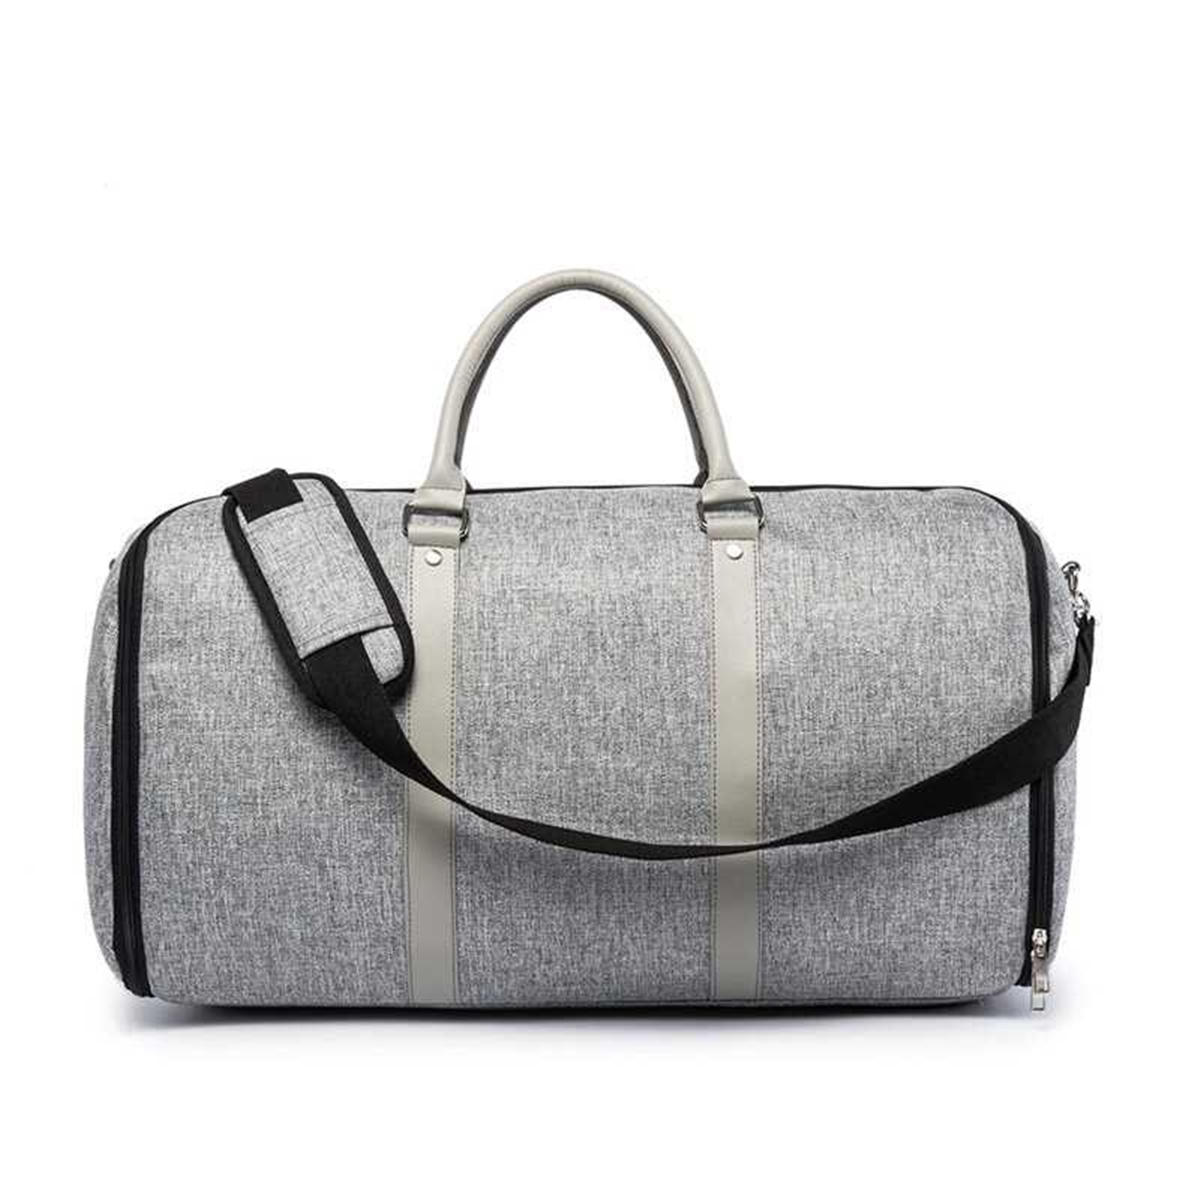 Men 2 In 1 Outdoor Business Travel Suit Bag Sports Gym Luggage Clothing Storage Pouch Organizer